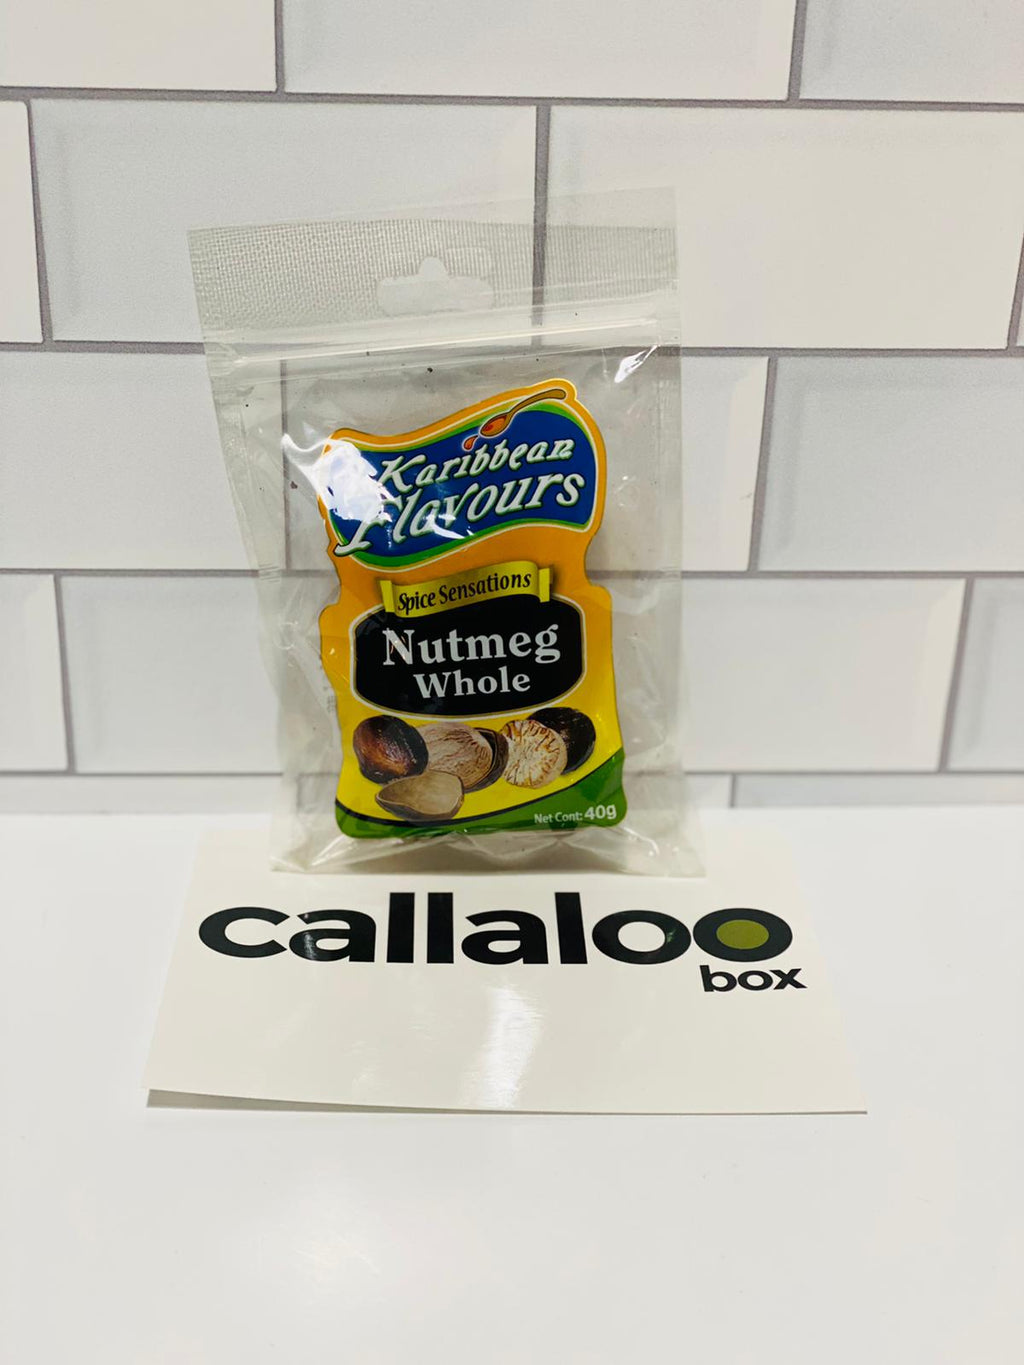 Callaloo Box Trinidad and Tobago Caribbean subscription box service Caribbean Online grocery_Karibbean Flavours Whole Nutmeg